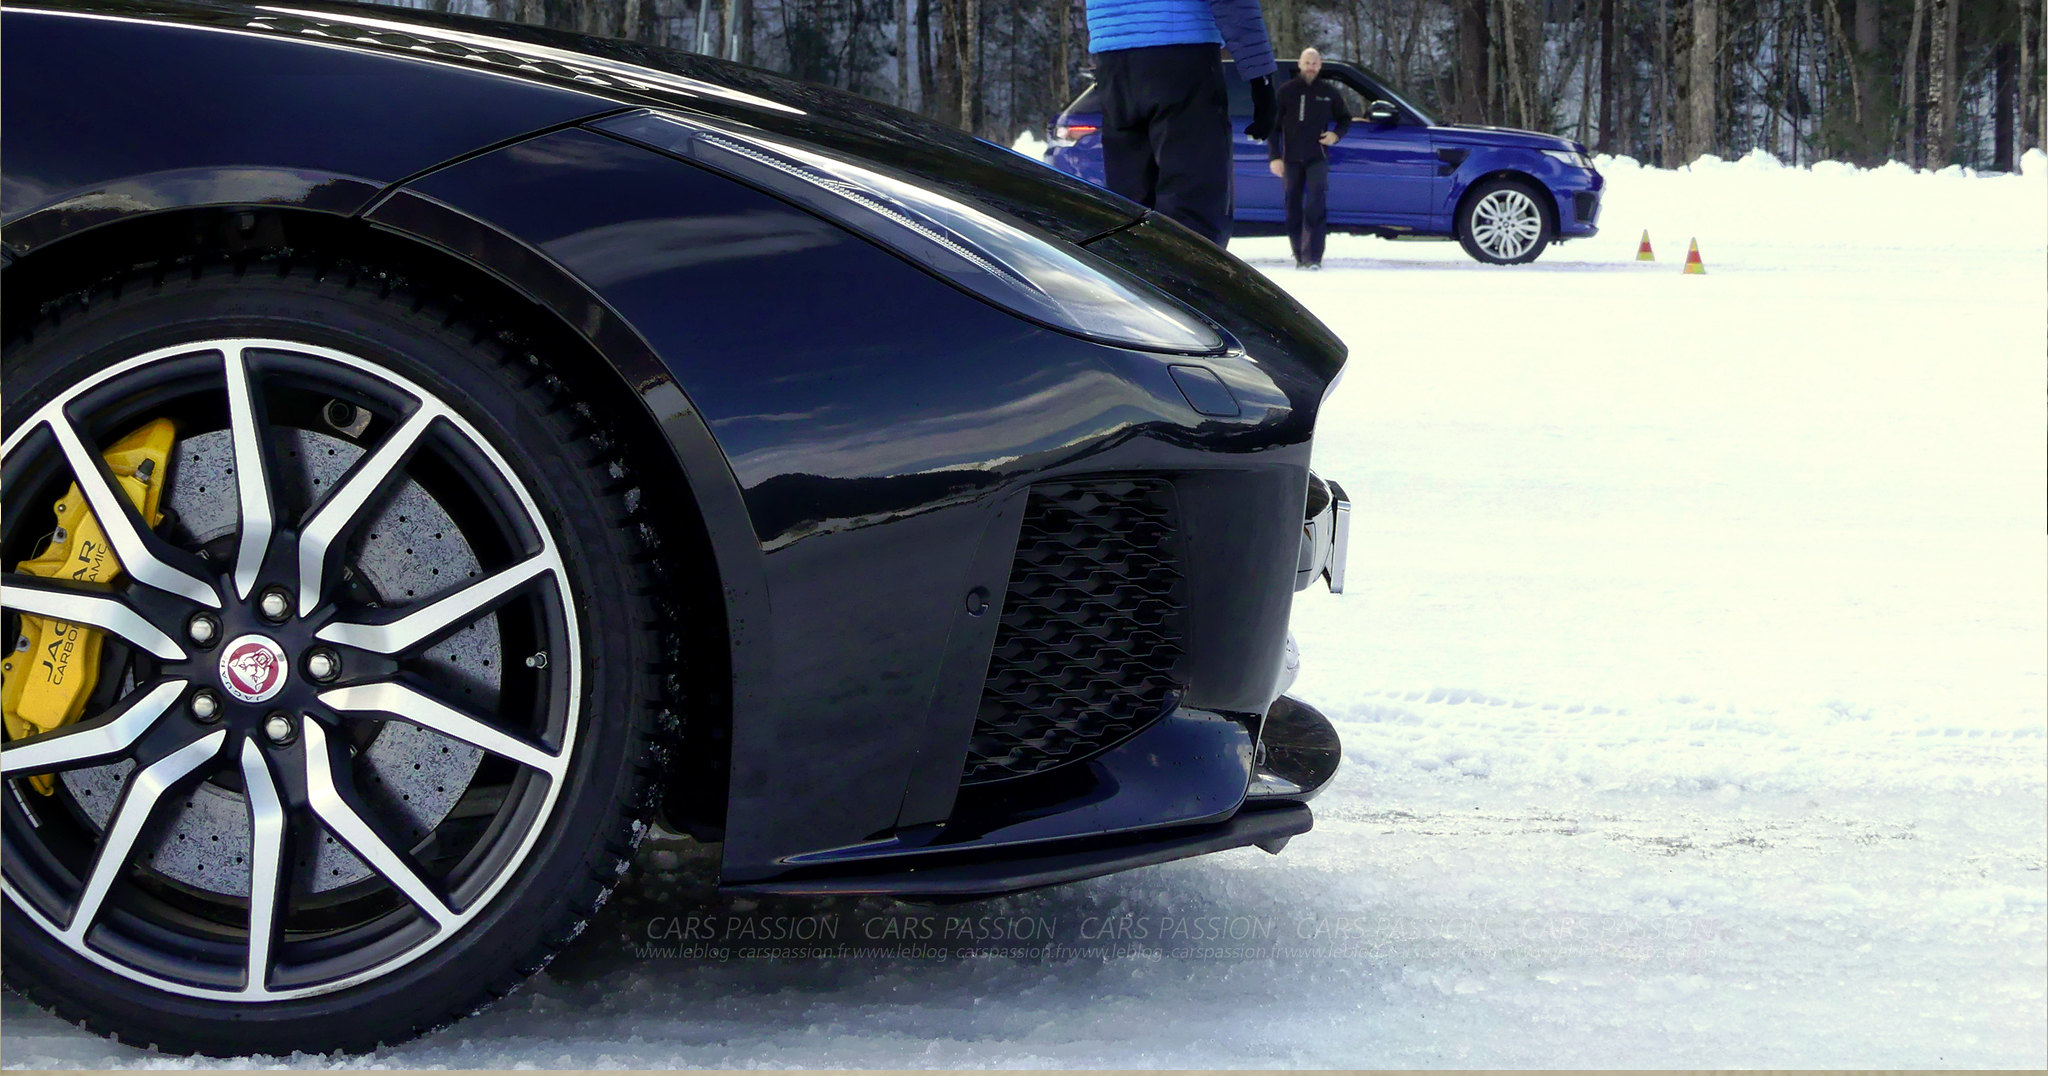 jaguar-land-rover-ice-drivng-esperience-gstaad (21)